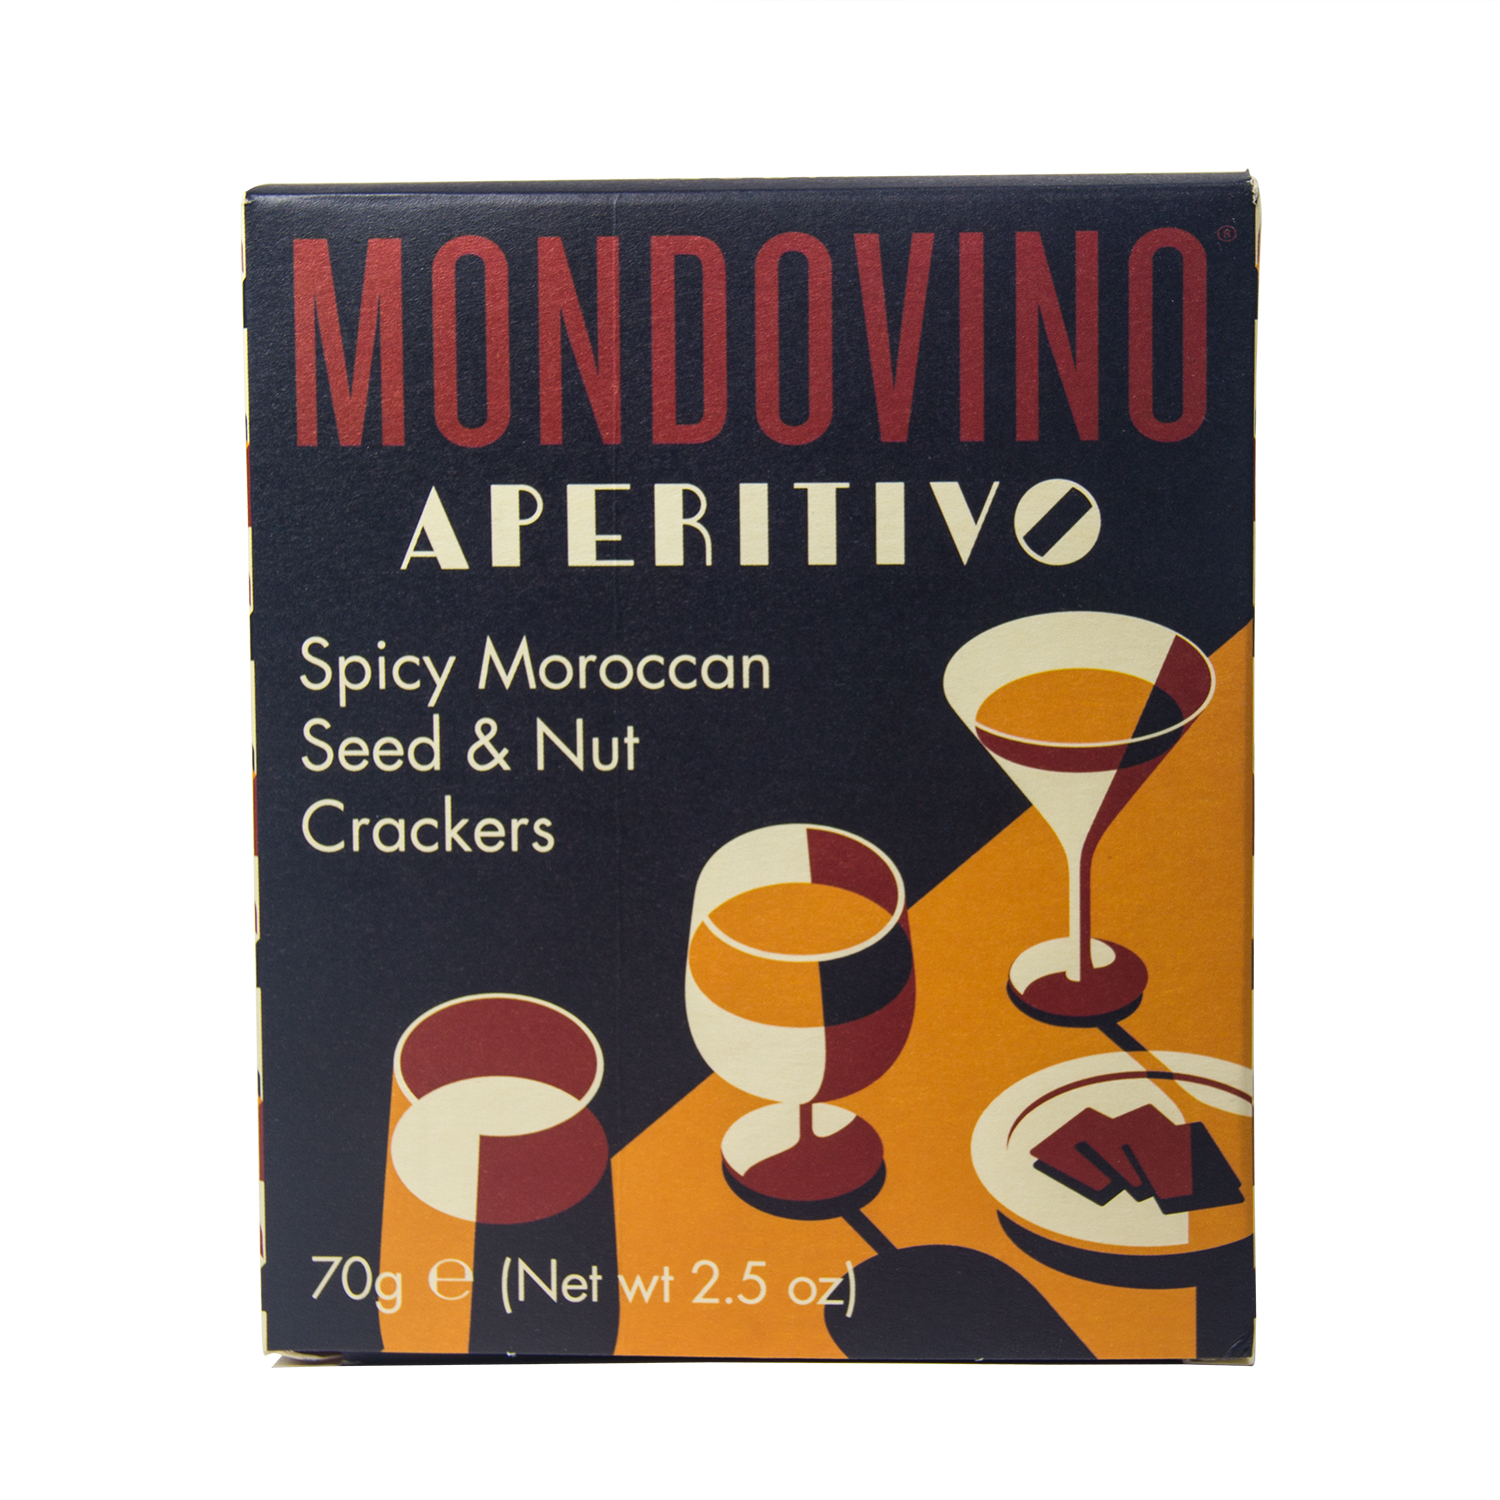 Mondovino Aperitivo Spicy Moroccan Seed And Nut Crackers, 70 Gms